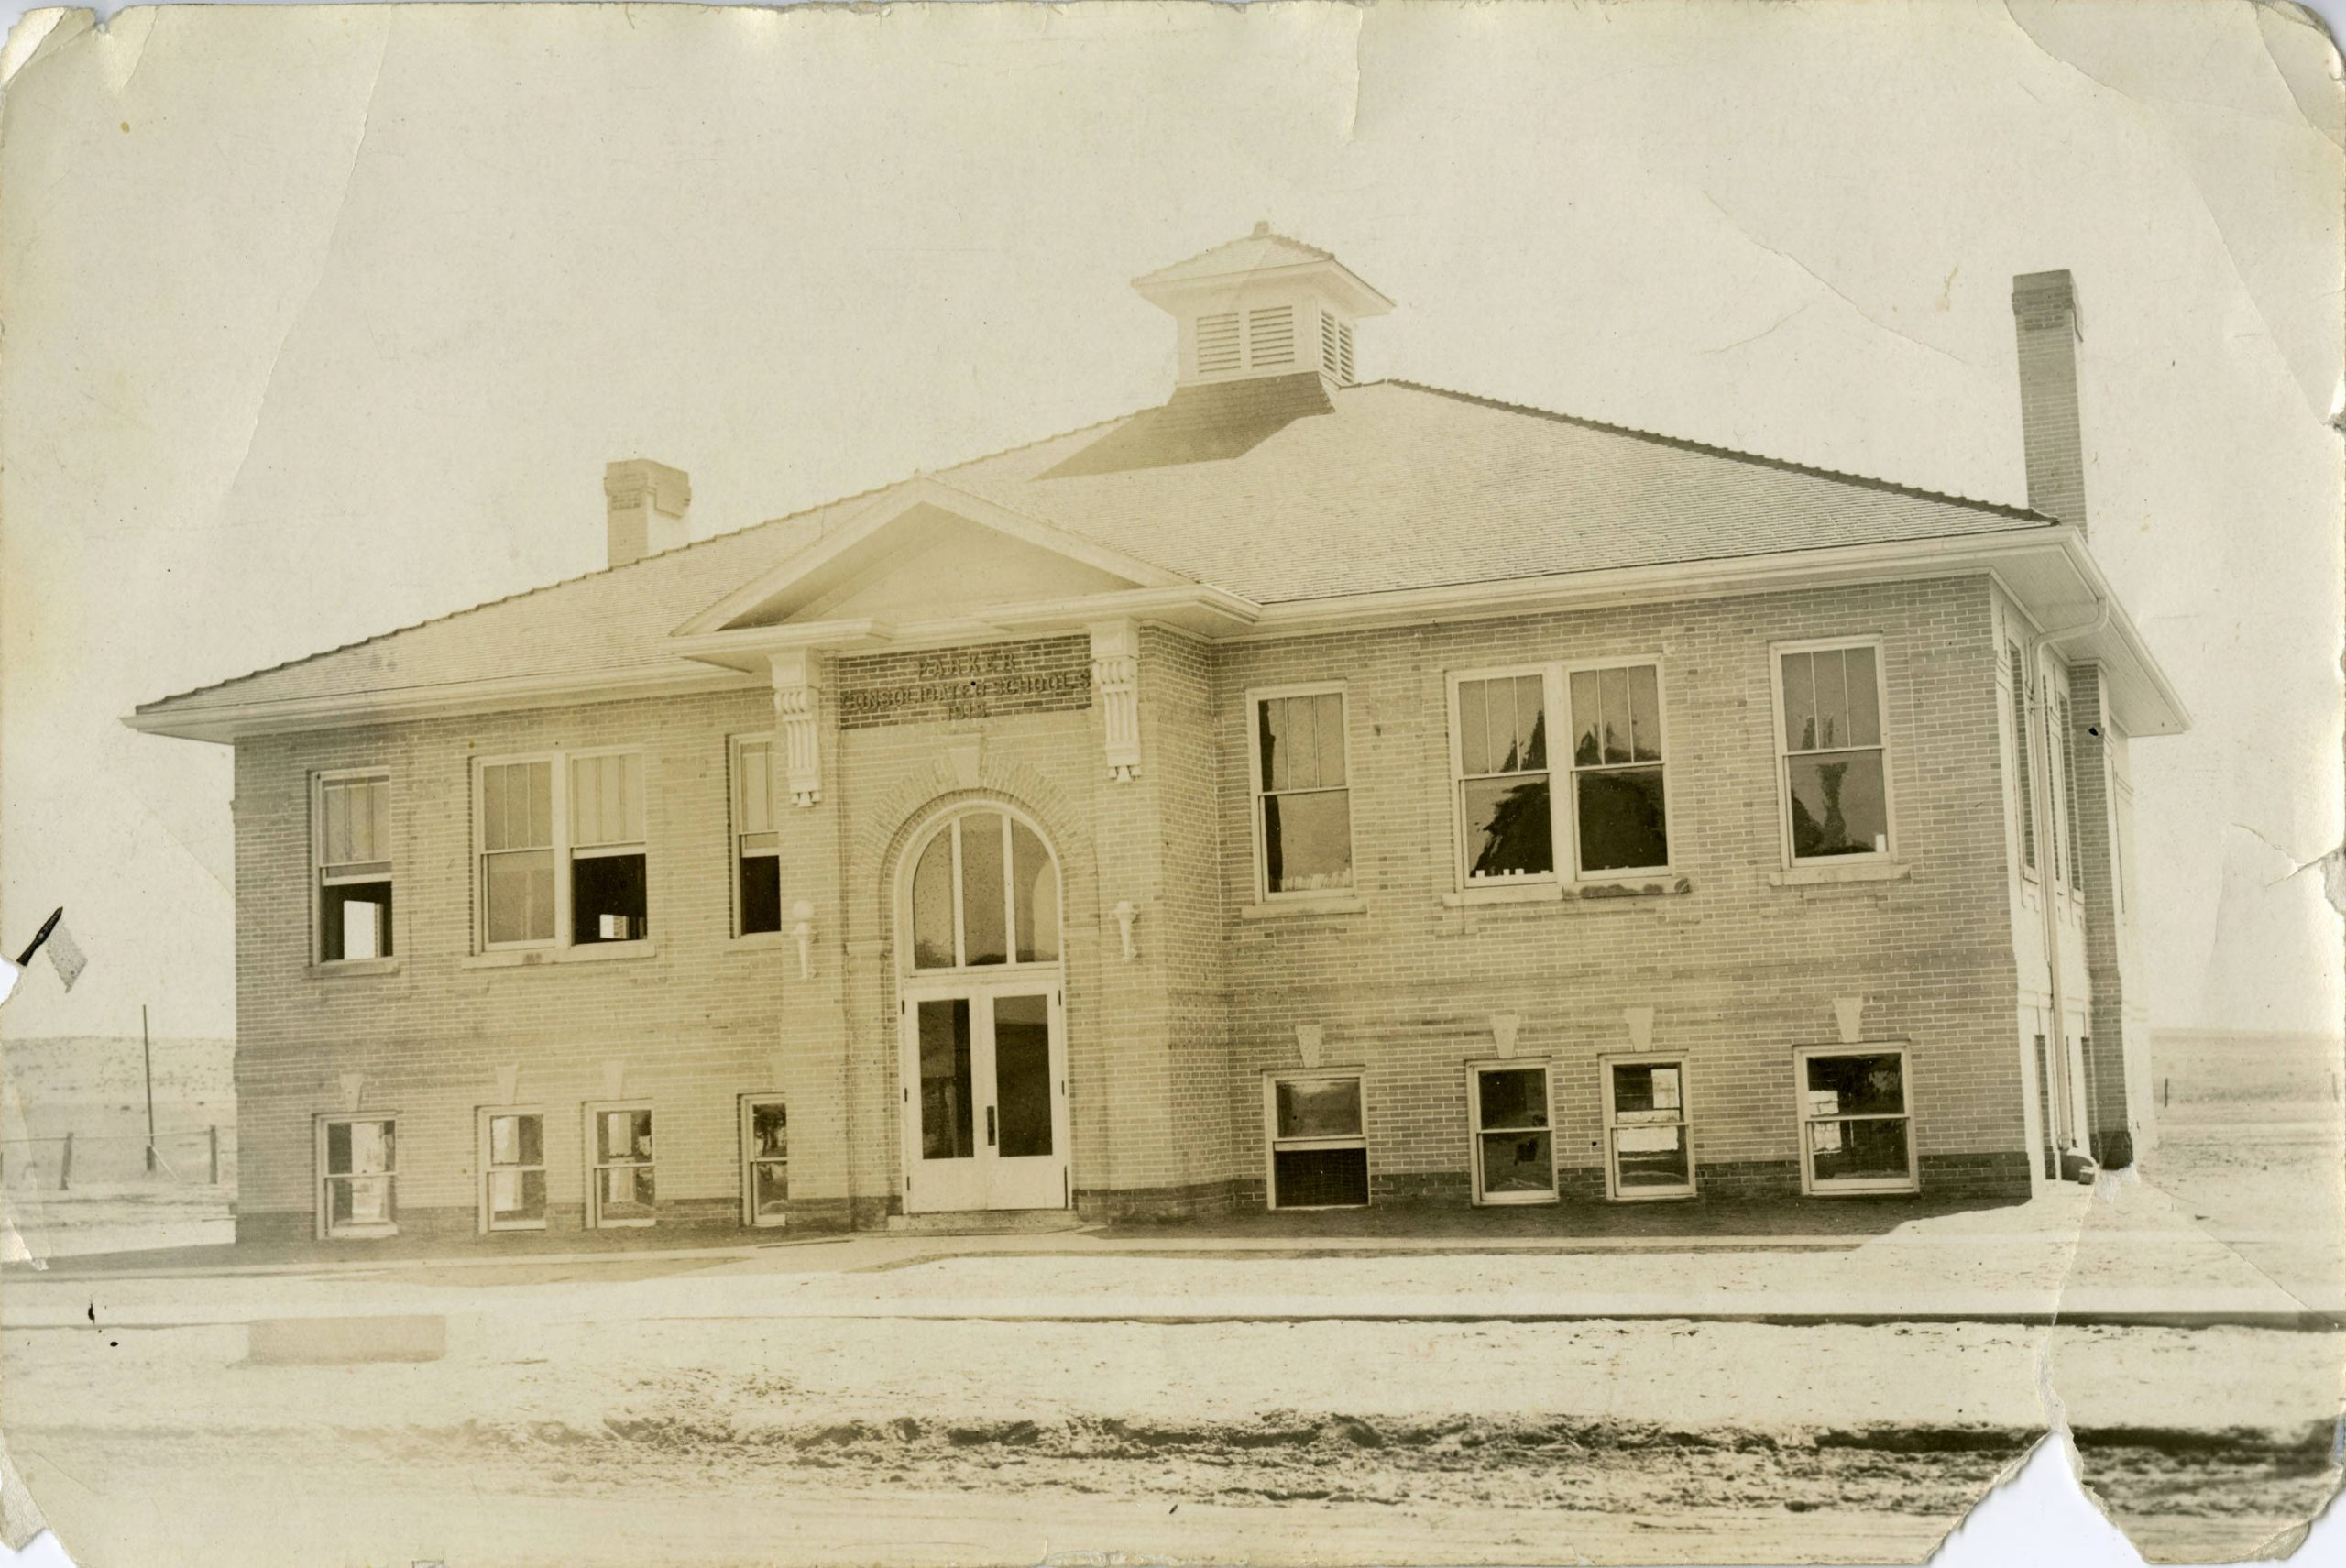 Photo courtesy of Douglas County Libraries Archives & Local History